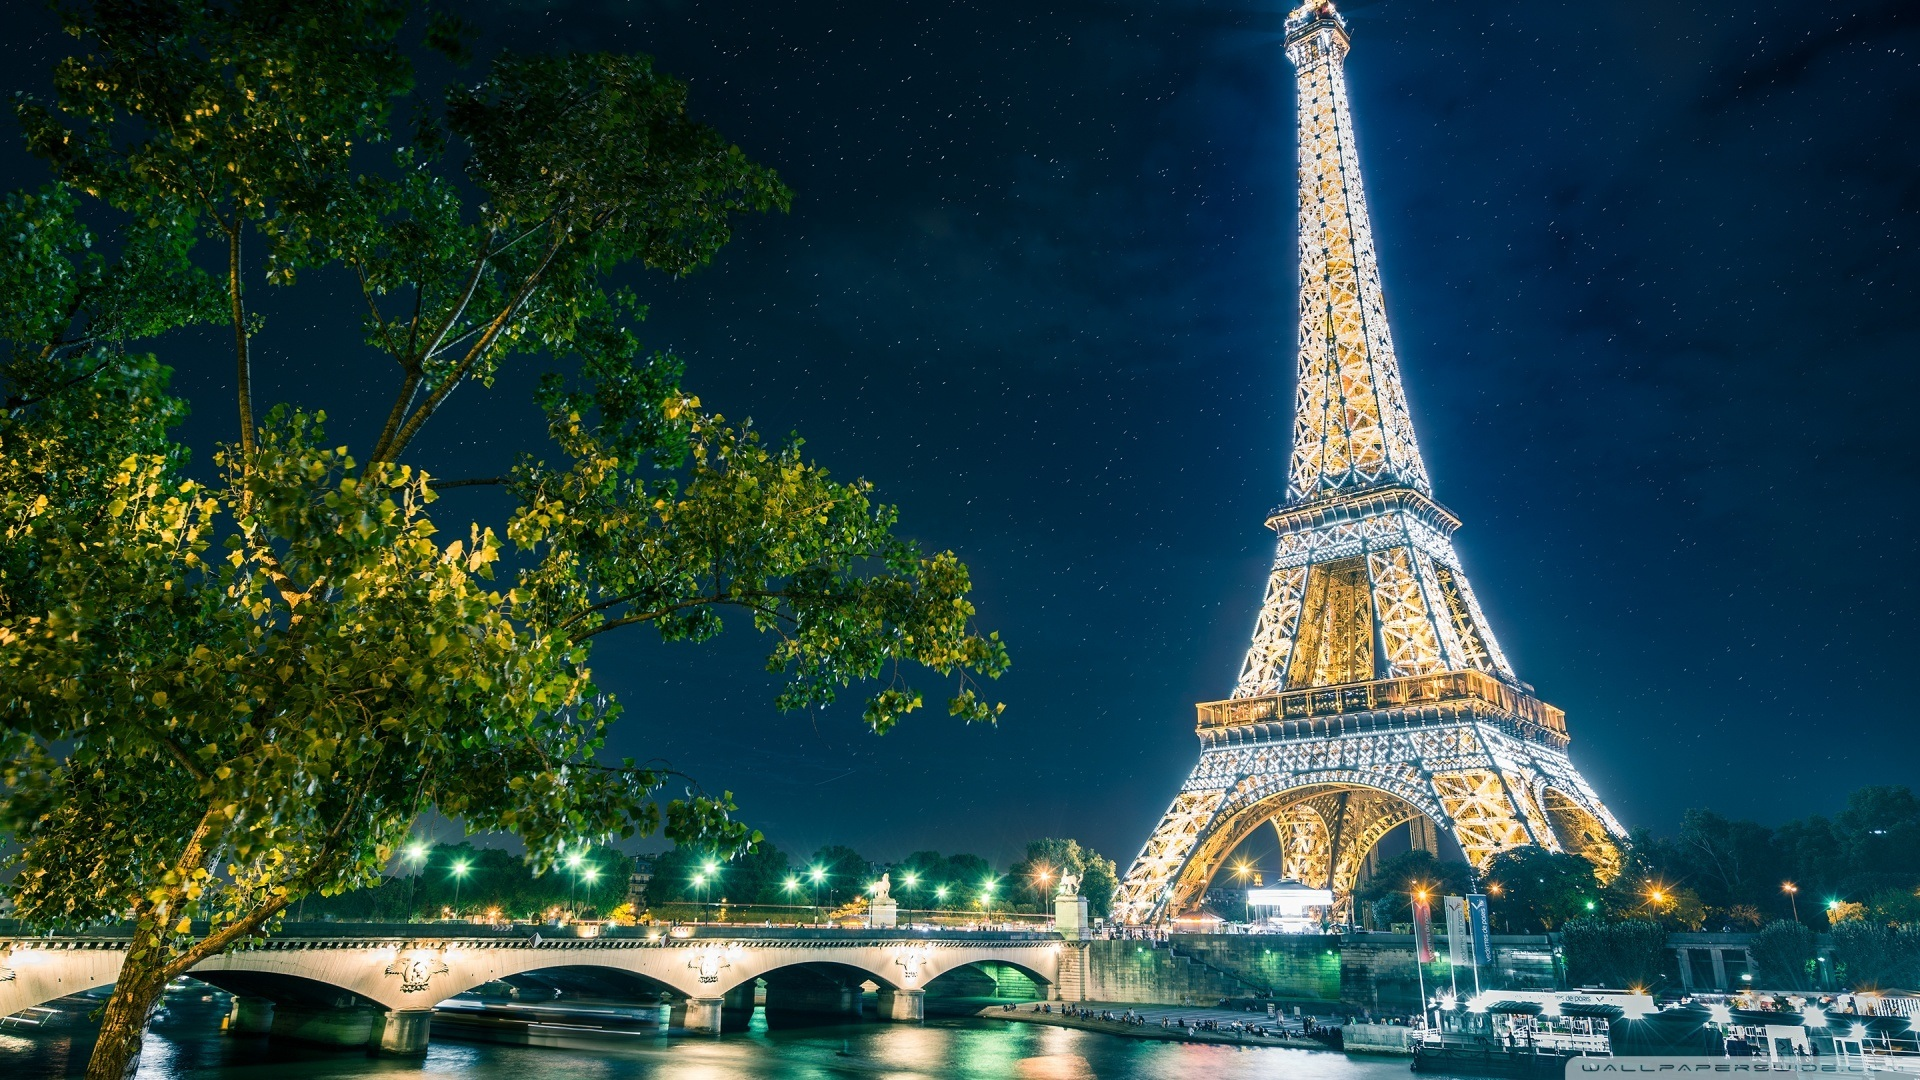 5250739_3924768_2746201_9739157eiffel_tower_11-wallpaper-1920x1080